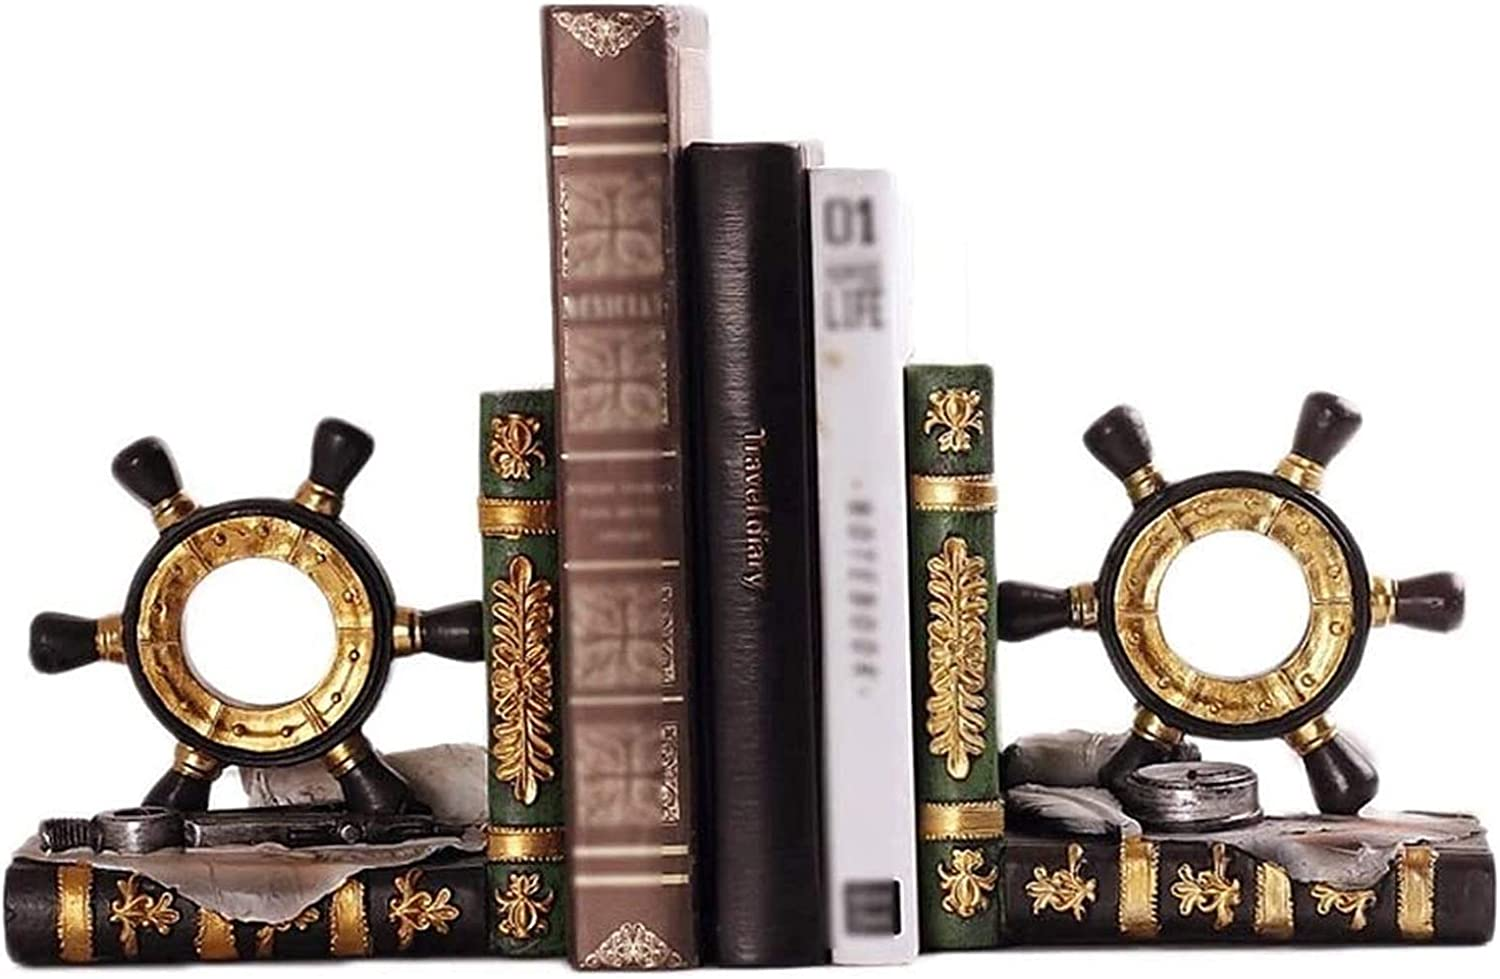 BDBT Sturdy and Well Made Art OFFicial shop Bookends S Book for Max 89% OFF Bookend Ends